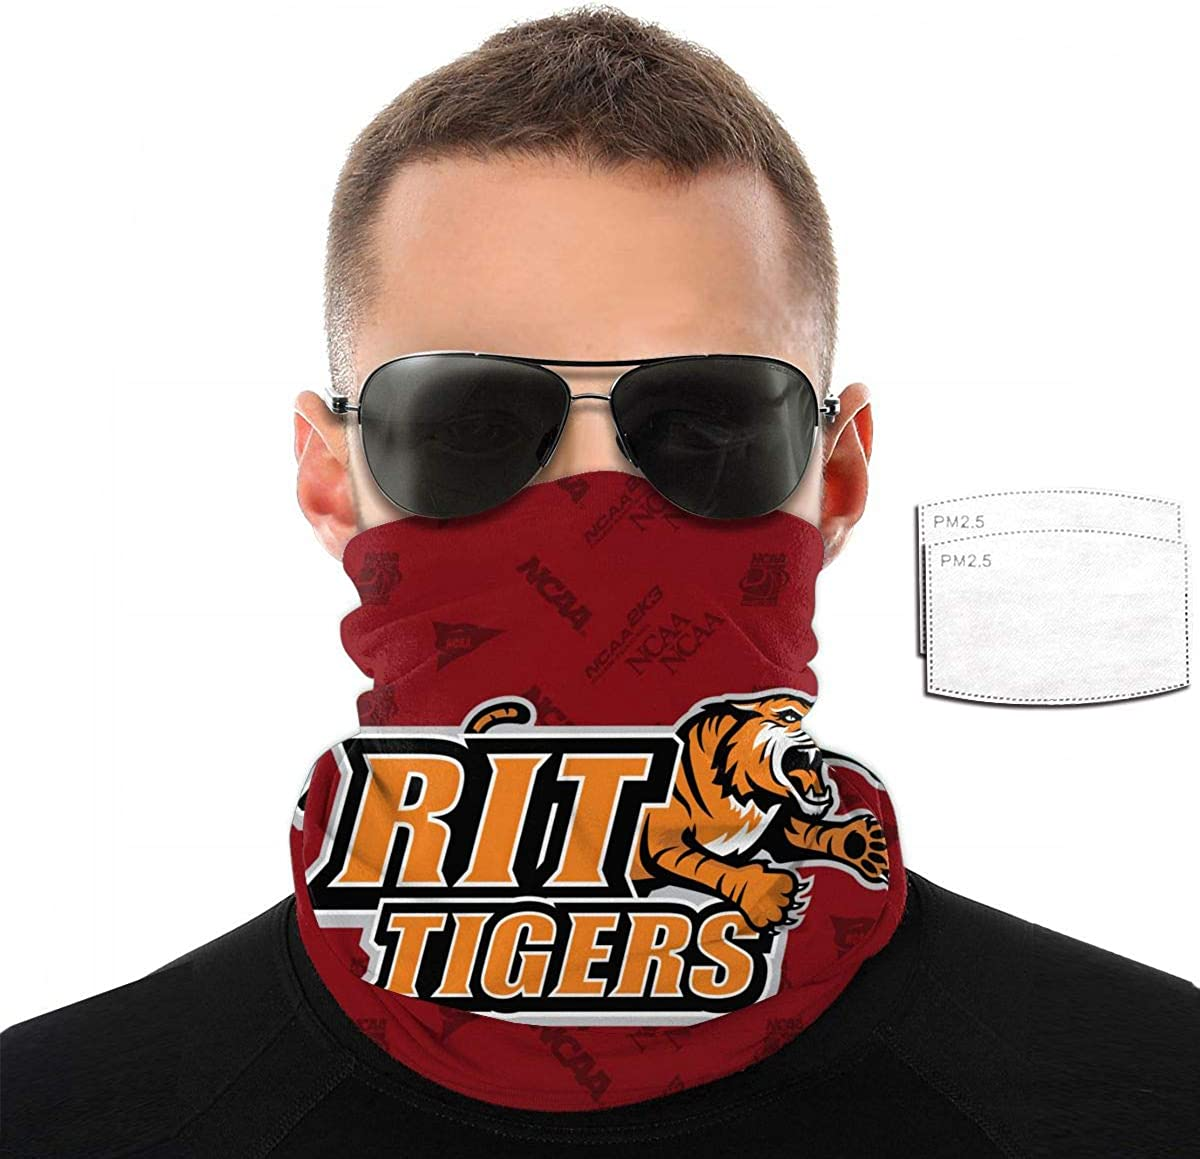 Rochester Institute of Technology Tigers Facial Decoration with Activated Carbon Filter